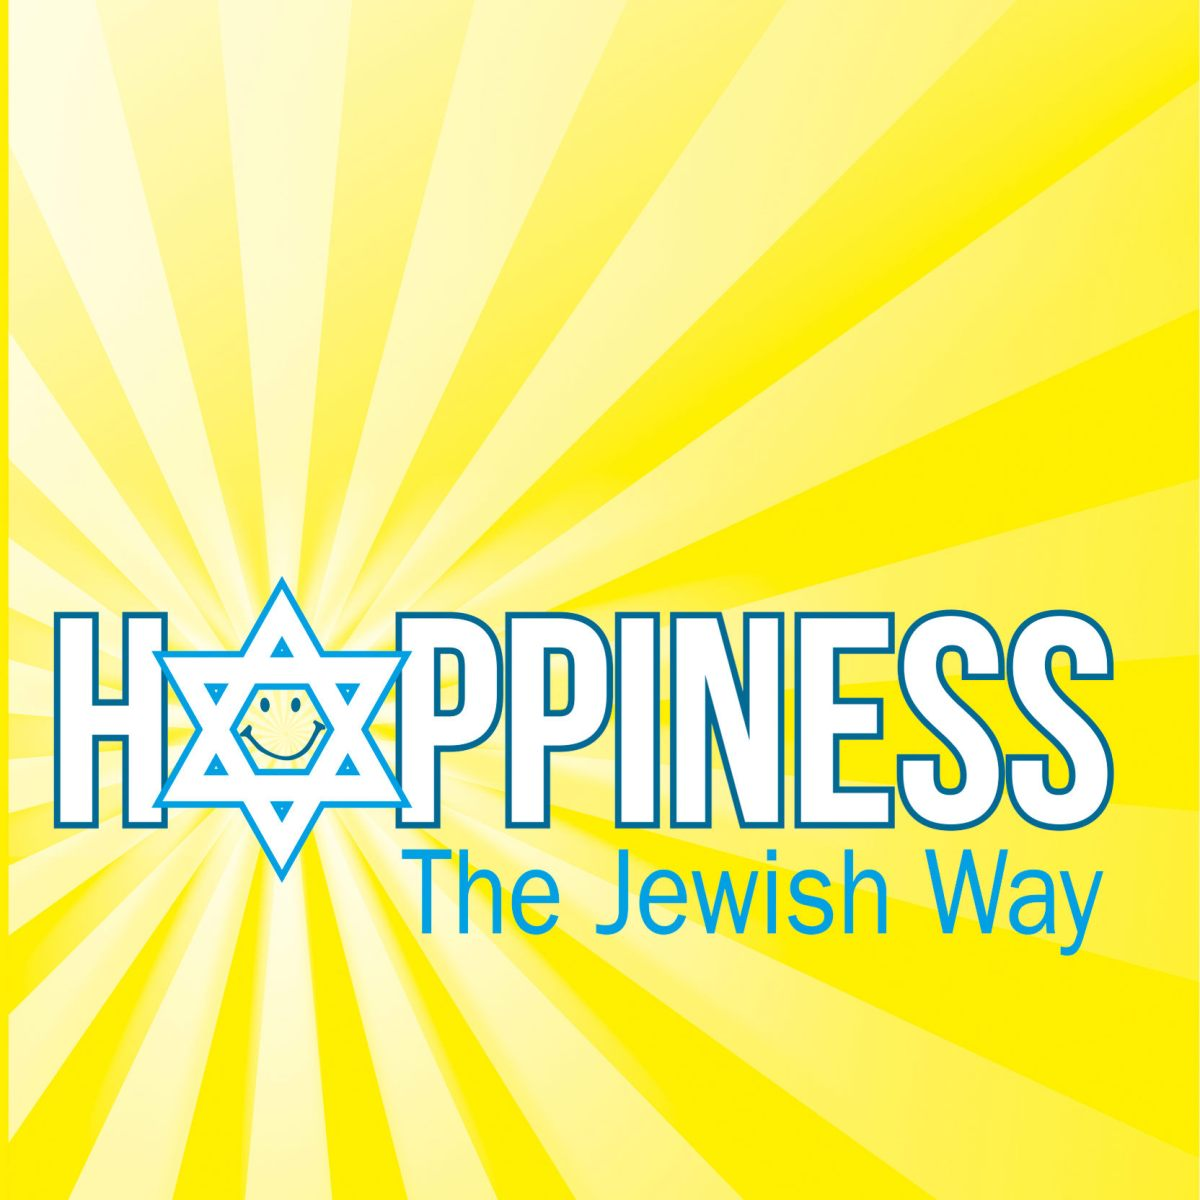 Happiness the Jewish Way: Interview with Olga Gilburd